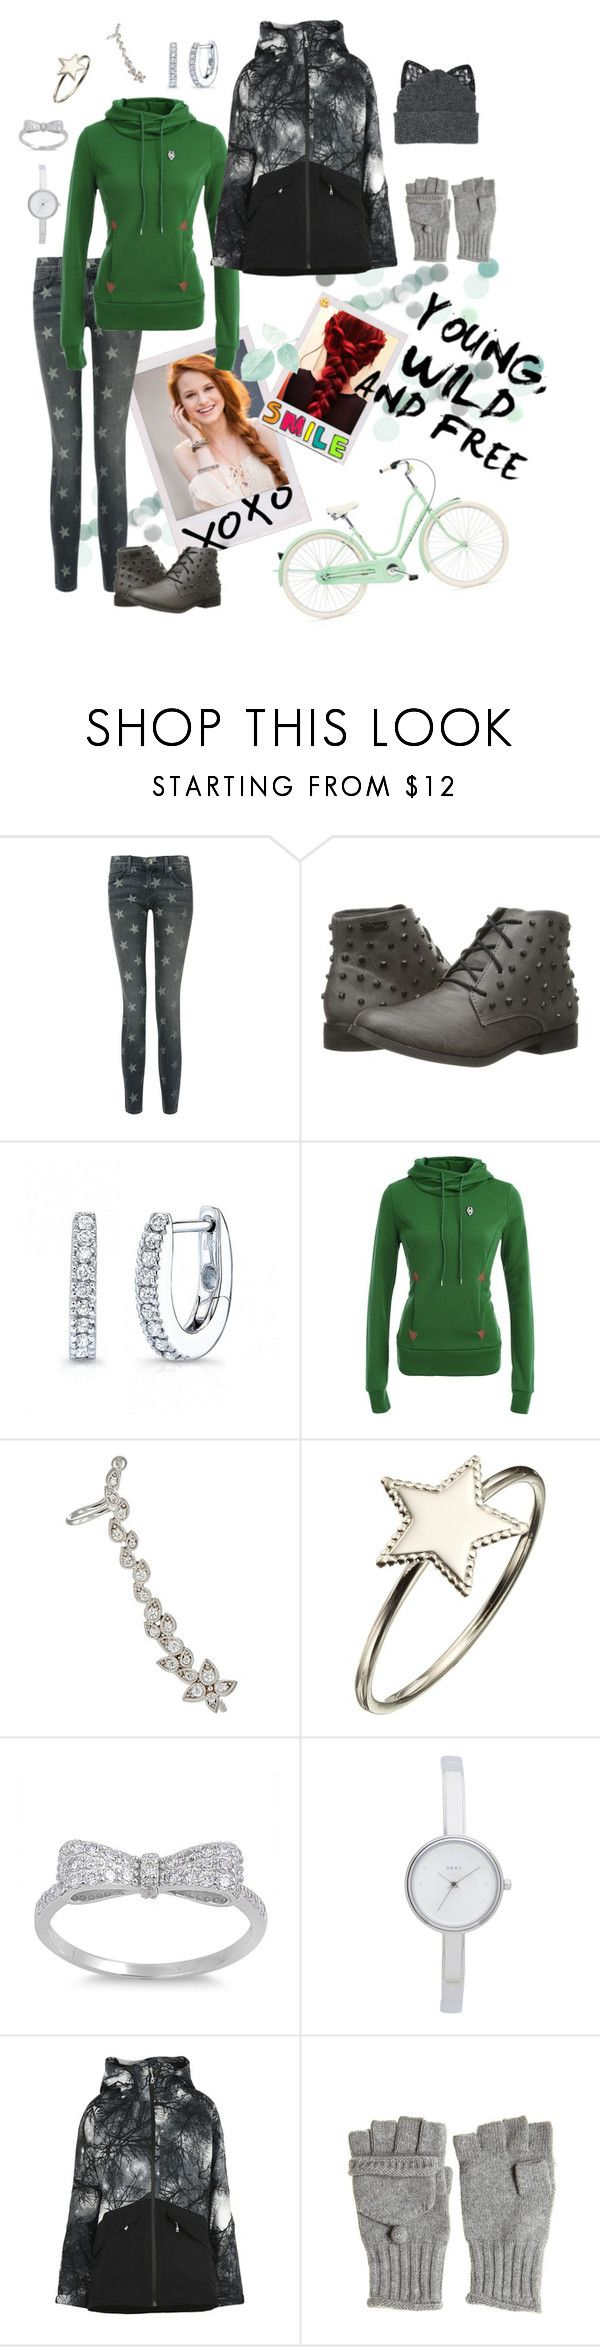 """""""Unbenannt #396"""" by funkenregen ❤ liked on Polyvore featuring Current/Elliott, Volcom, STONE, Phoebe Coleman, DKNY, Patagonia, Calypso St. Barth and Silver Spoon Attire"""